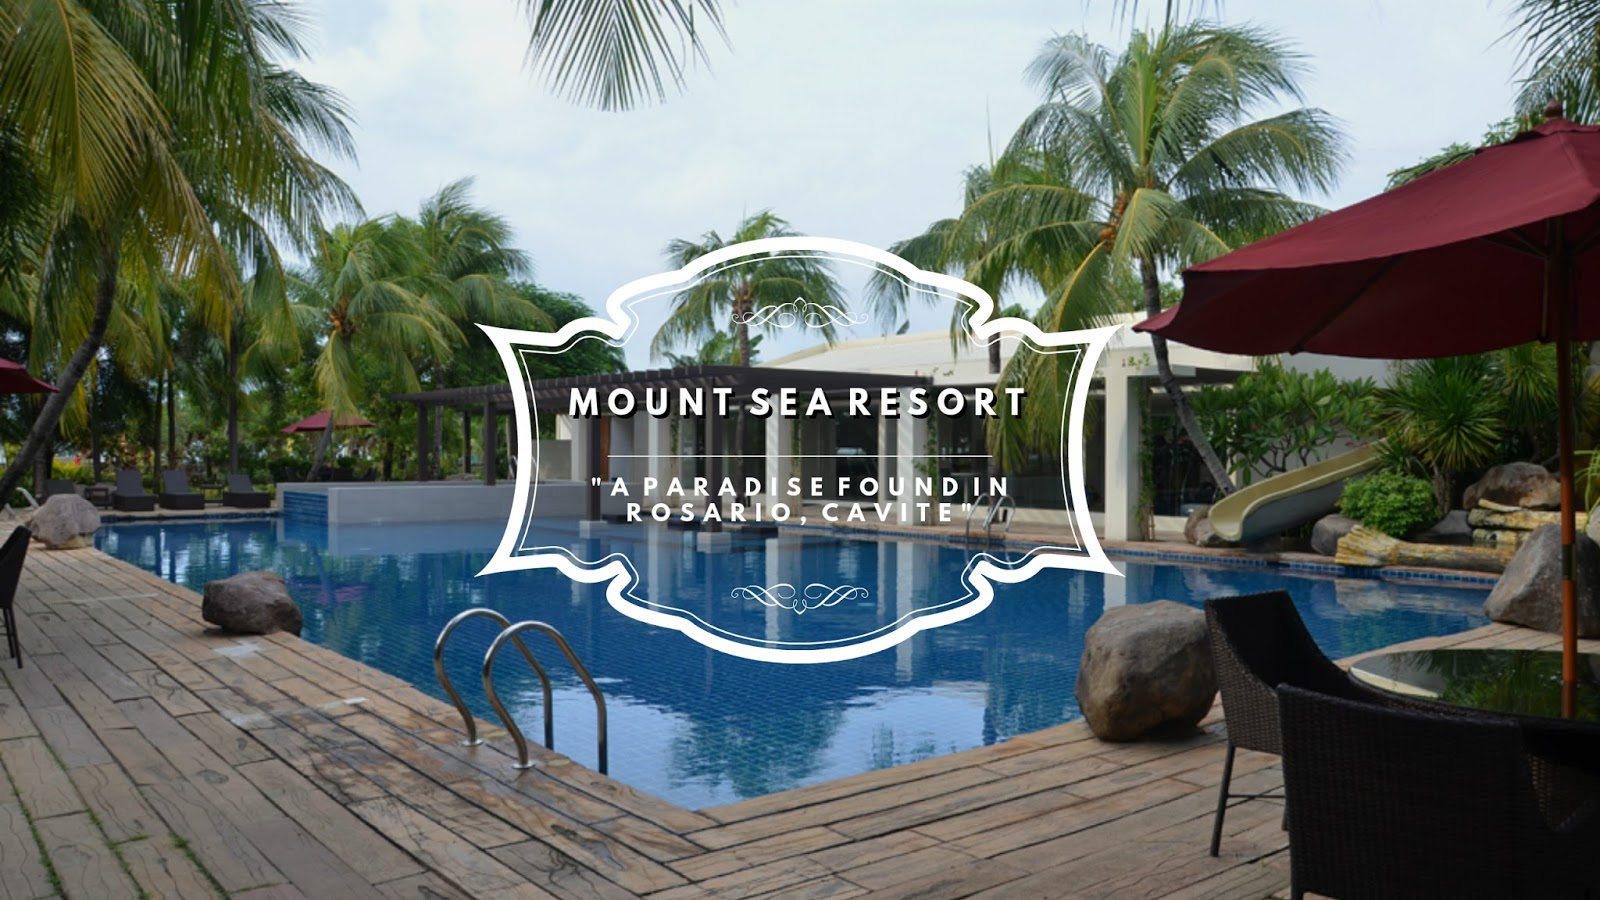 Mount Sea Resort A Paradise Found In Rosario Cavite Pinoy Adventurista Top Travel Blogs